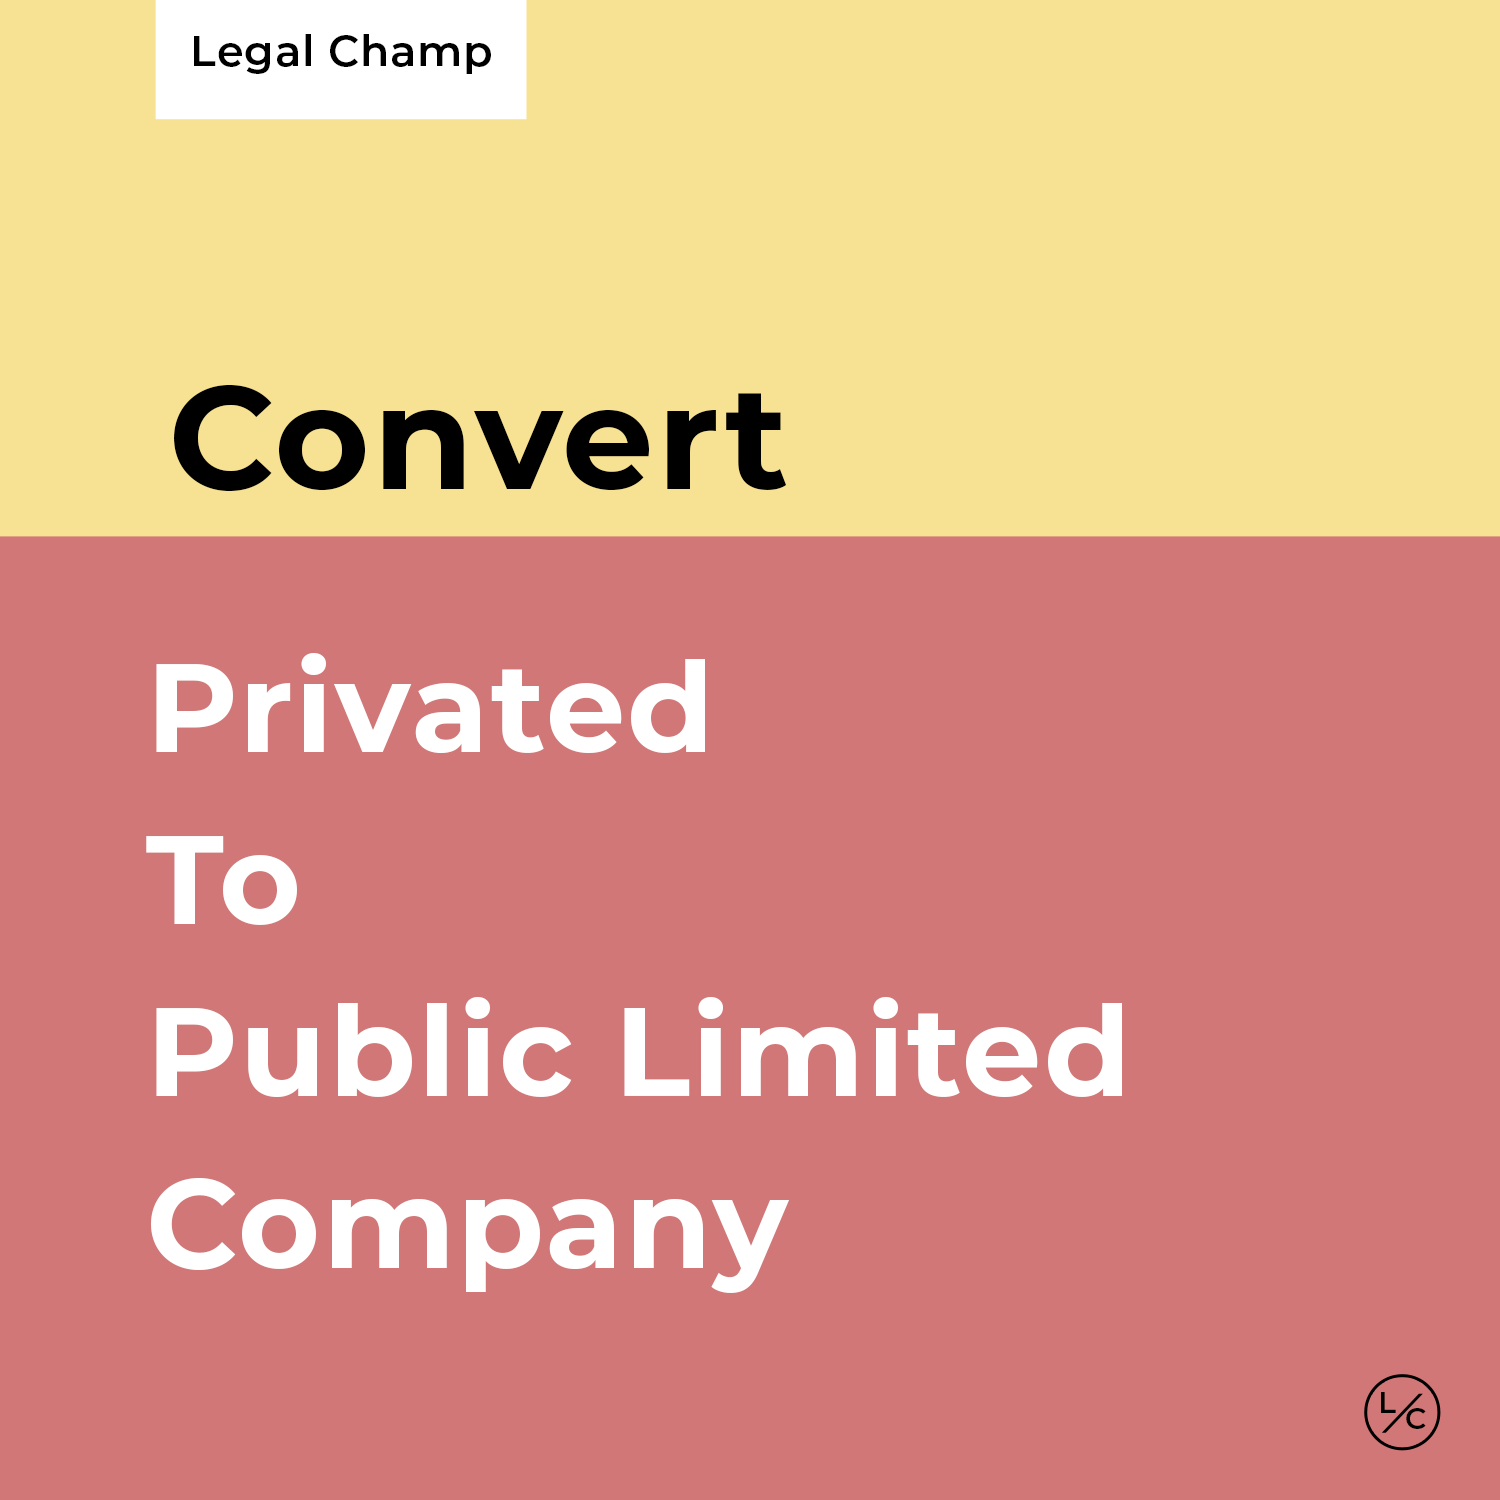 Private To Public Limited Company